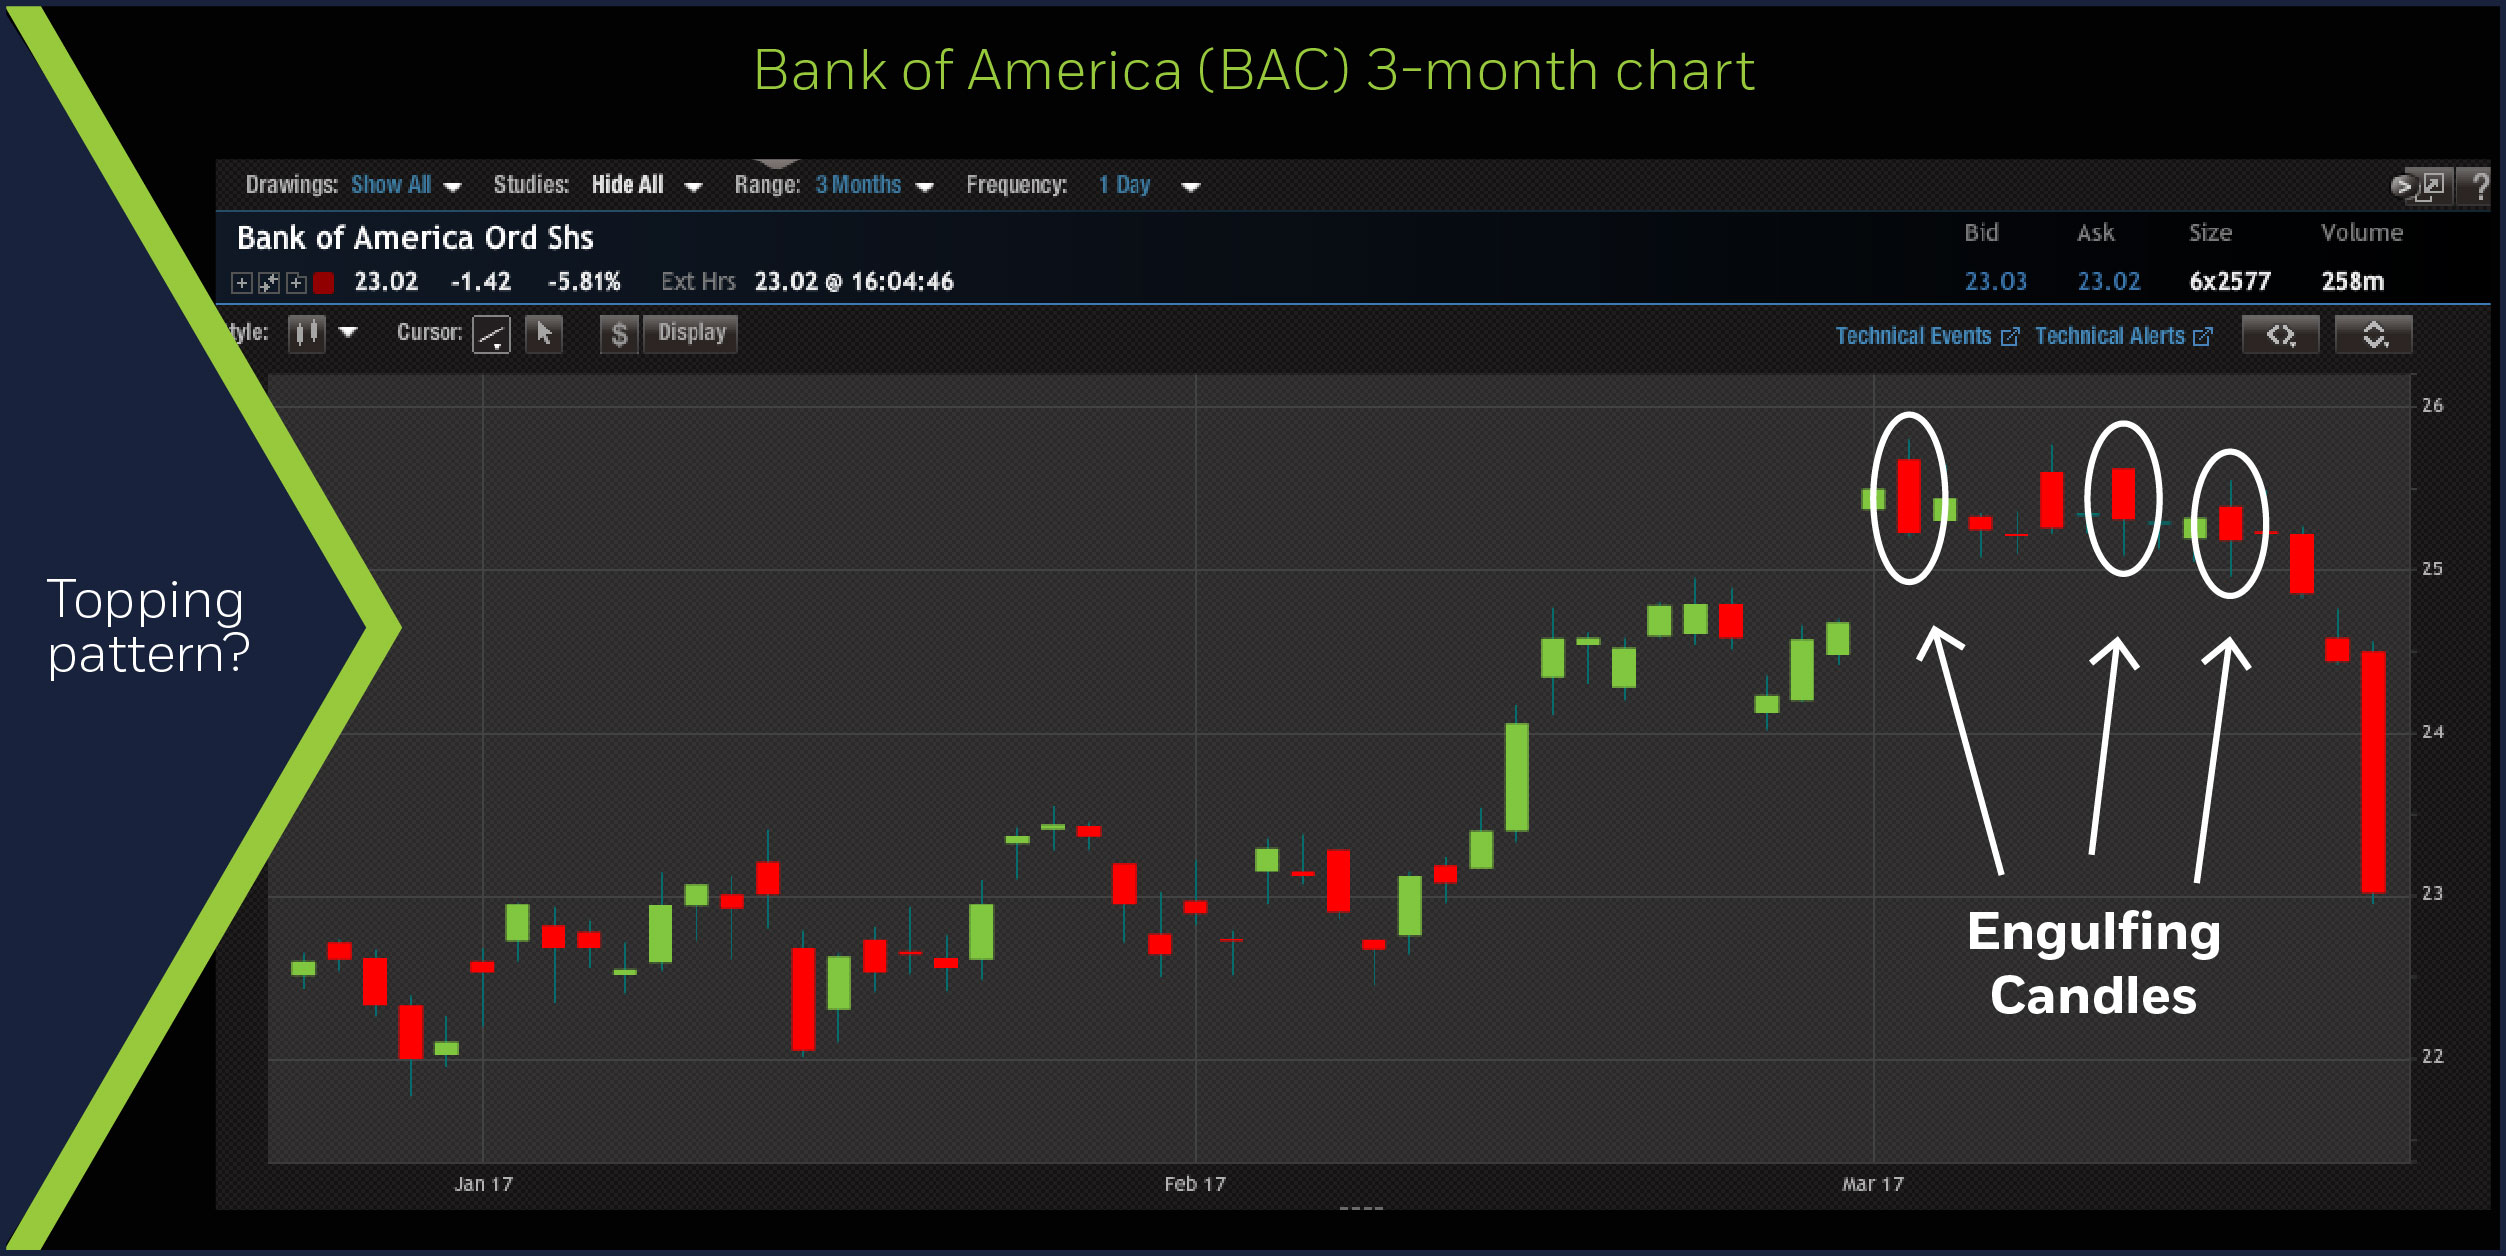 Bank of America 3-month chart